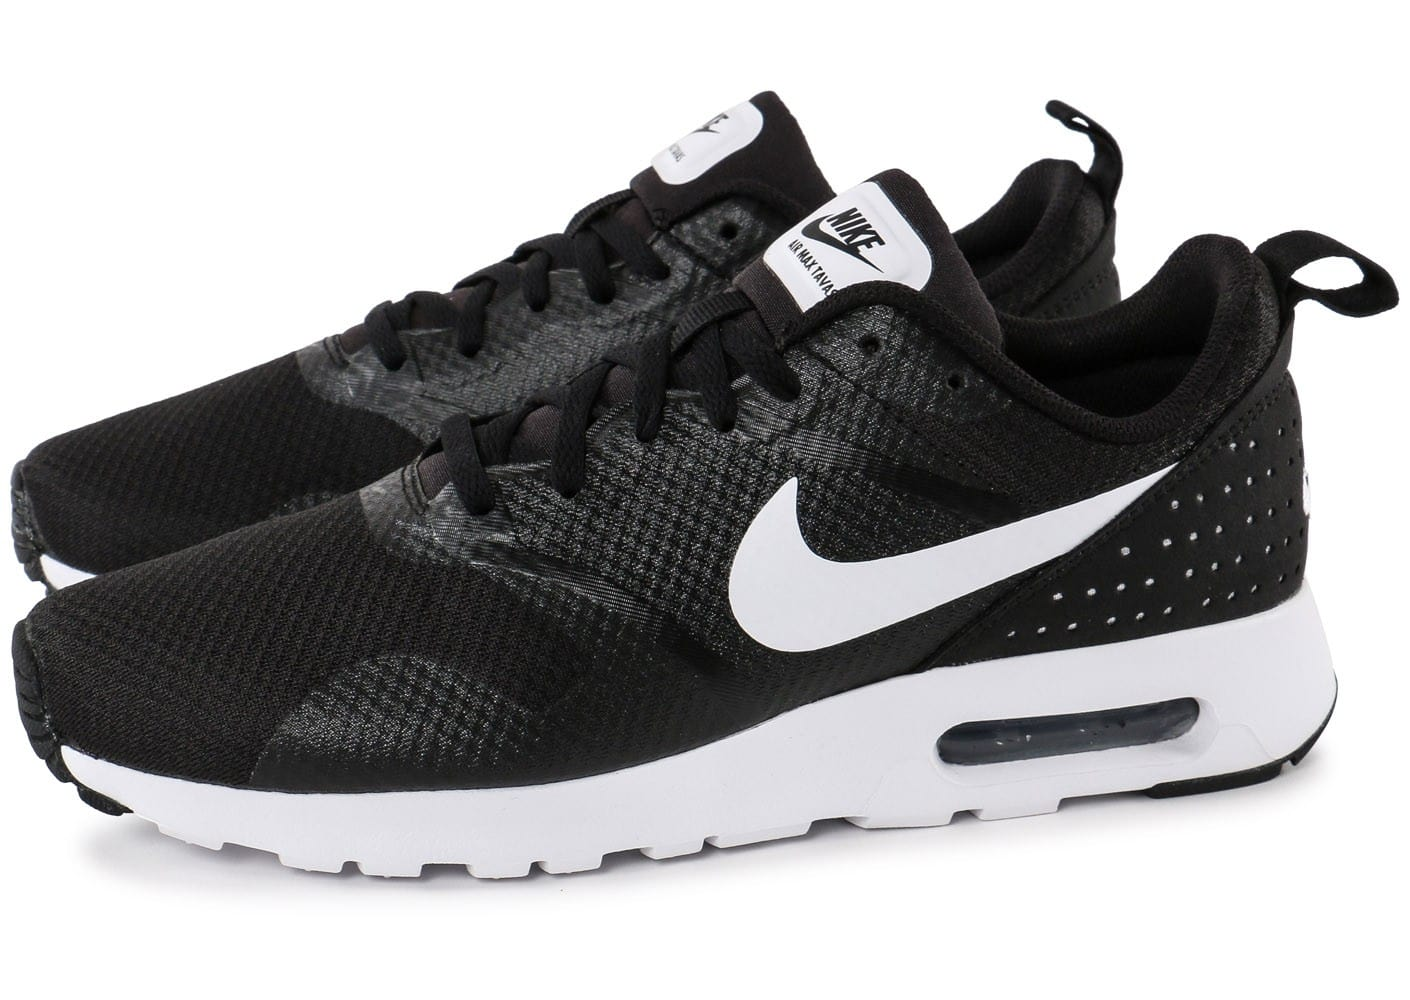 soldes nike air max tavas noire chaussures homme chausport. Black Bedroom Furniture Sets. Home Design Ideas